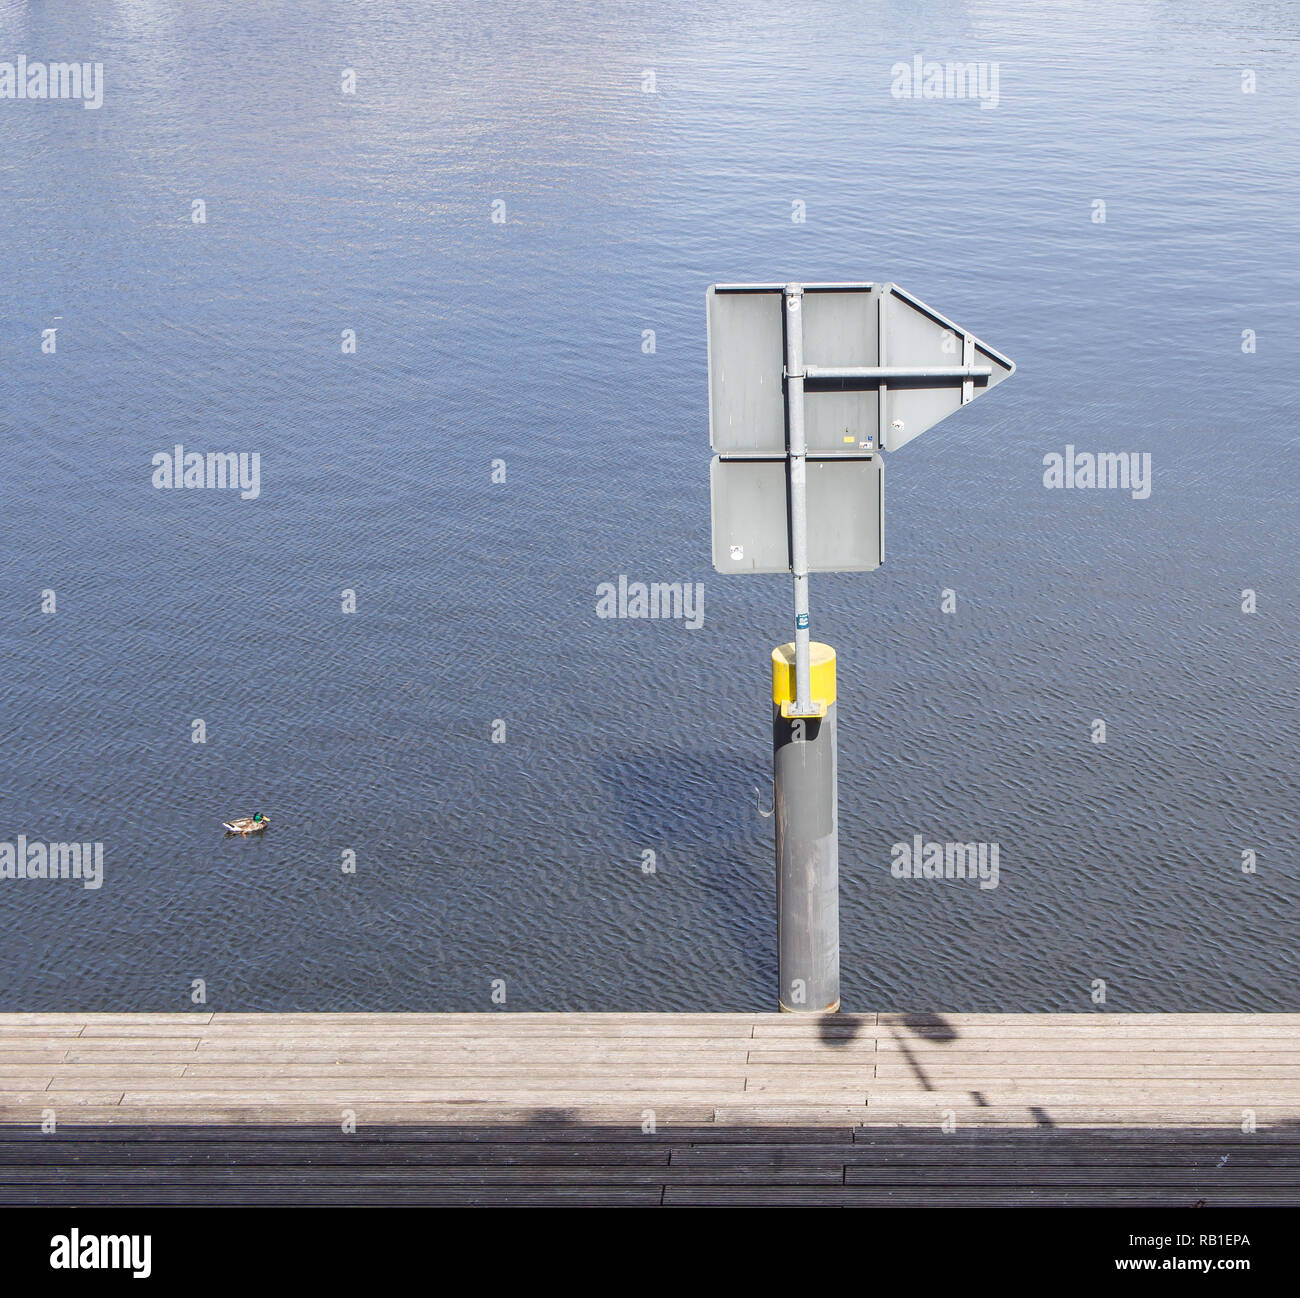 Sign Post At The Water In Tempelhofer Hafen, Meaning Harbor of Tempelhof In German Language, In Berlin, Germany - Stock Image